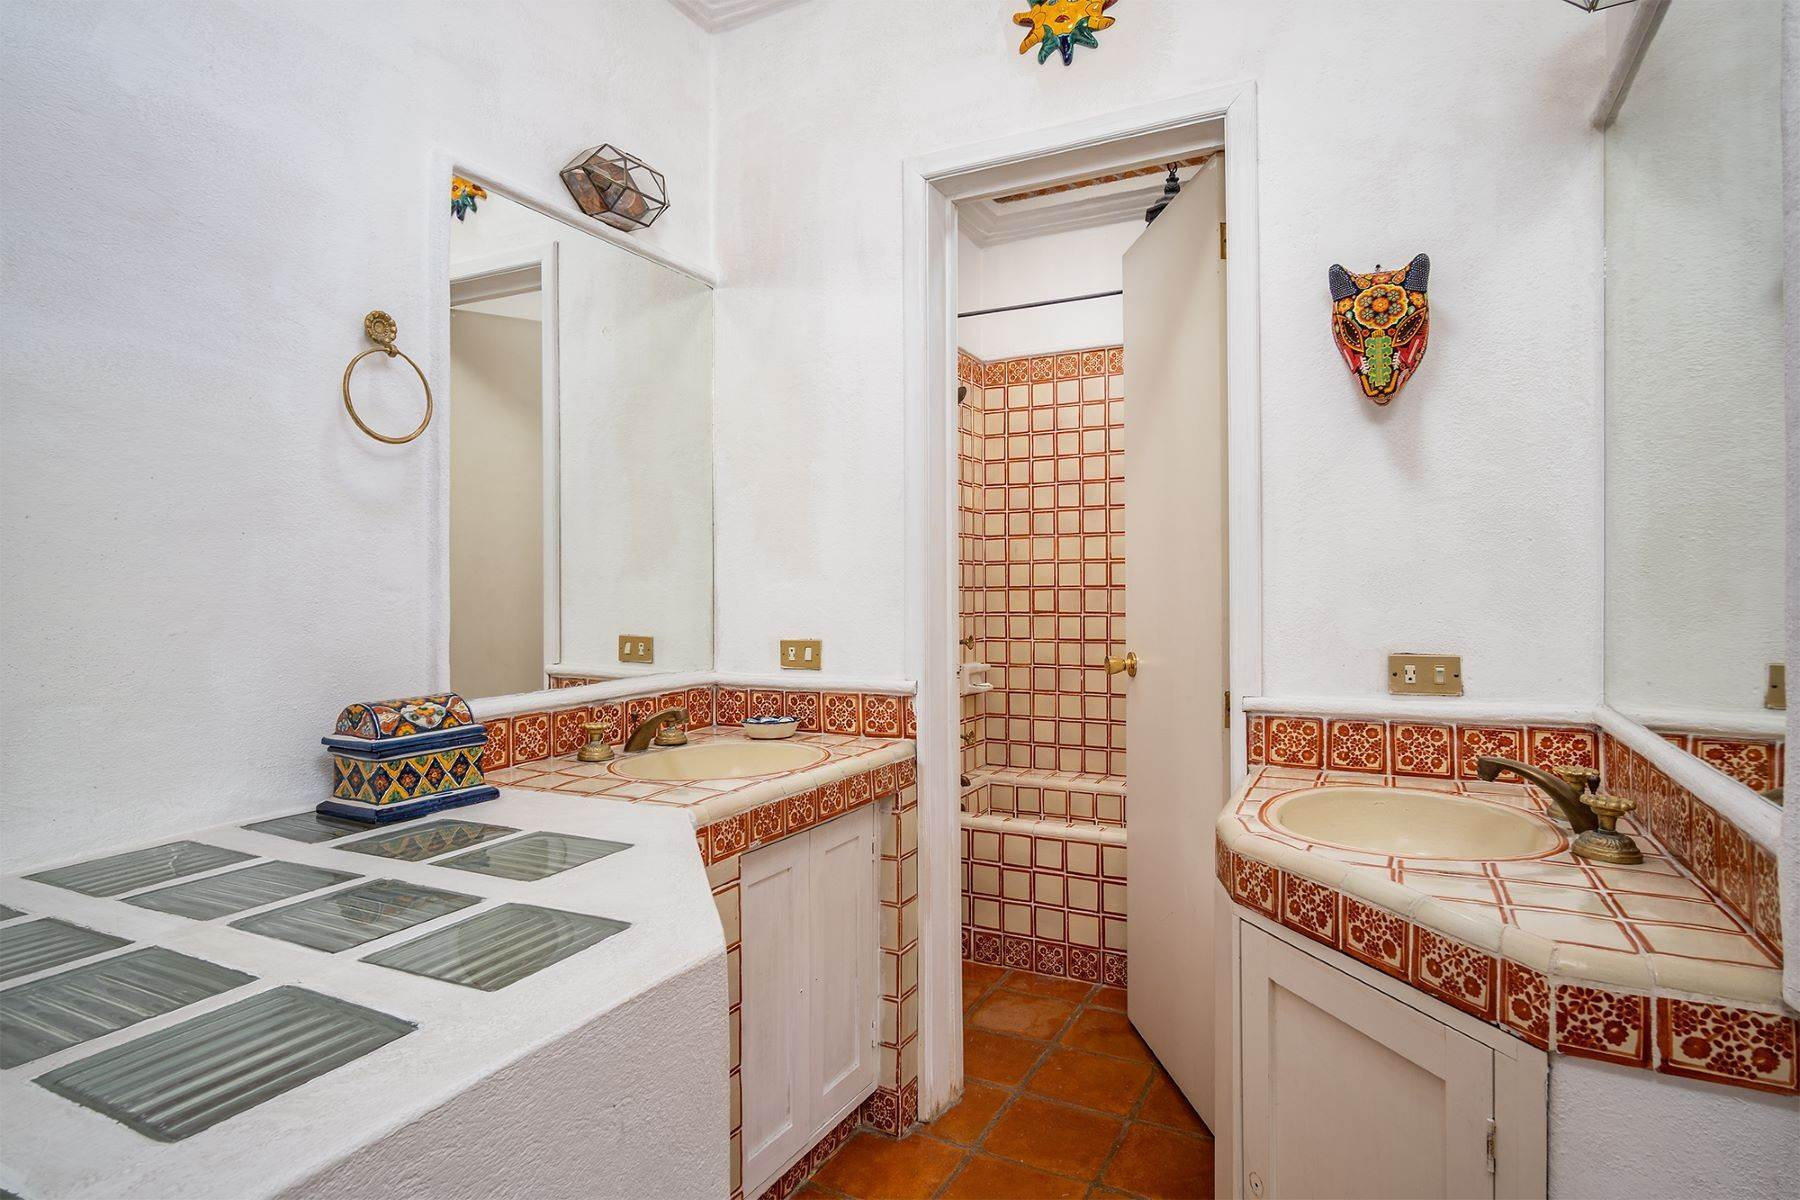 14. Single Family Homes for Sale at Pila Seca 2B, Centro Histórico San Miguel De Allende, Guanajuato 37700 Mexico